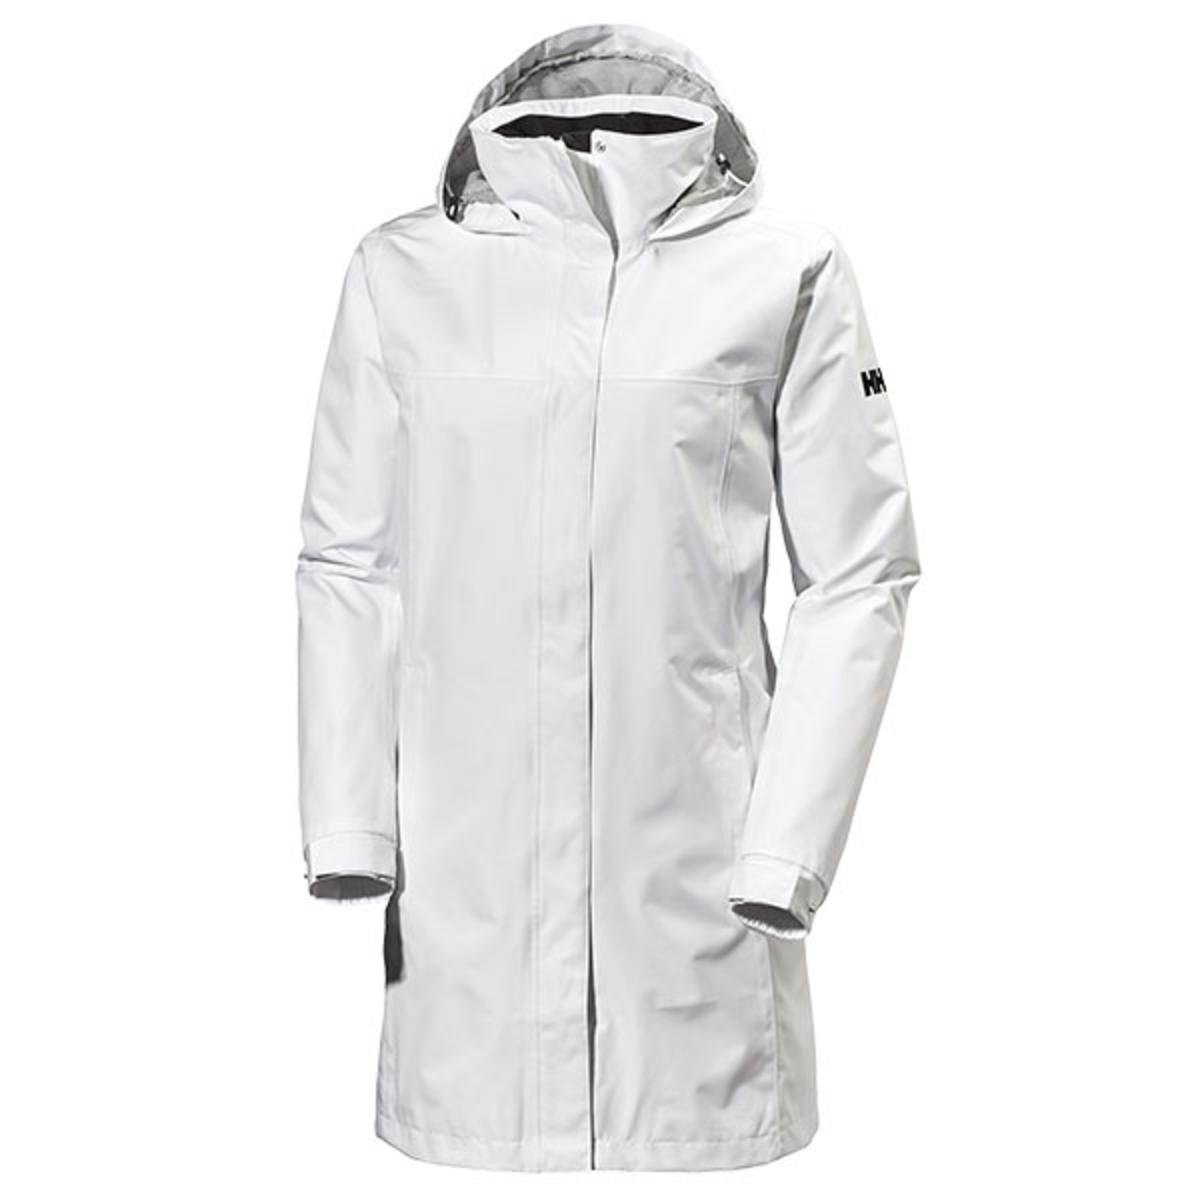 f1b37ff053a70 Helly Hansen Women s Aden Long Jacket - The Warming Store